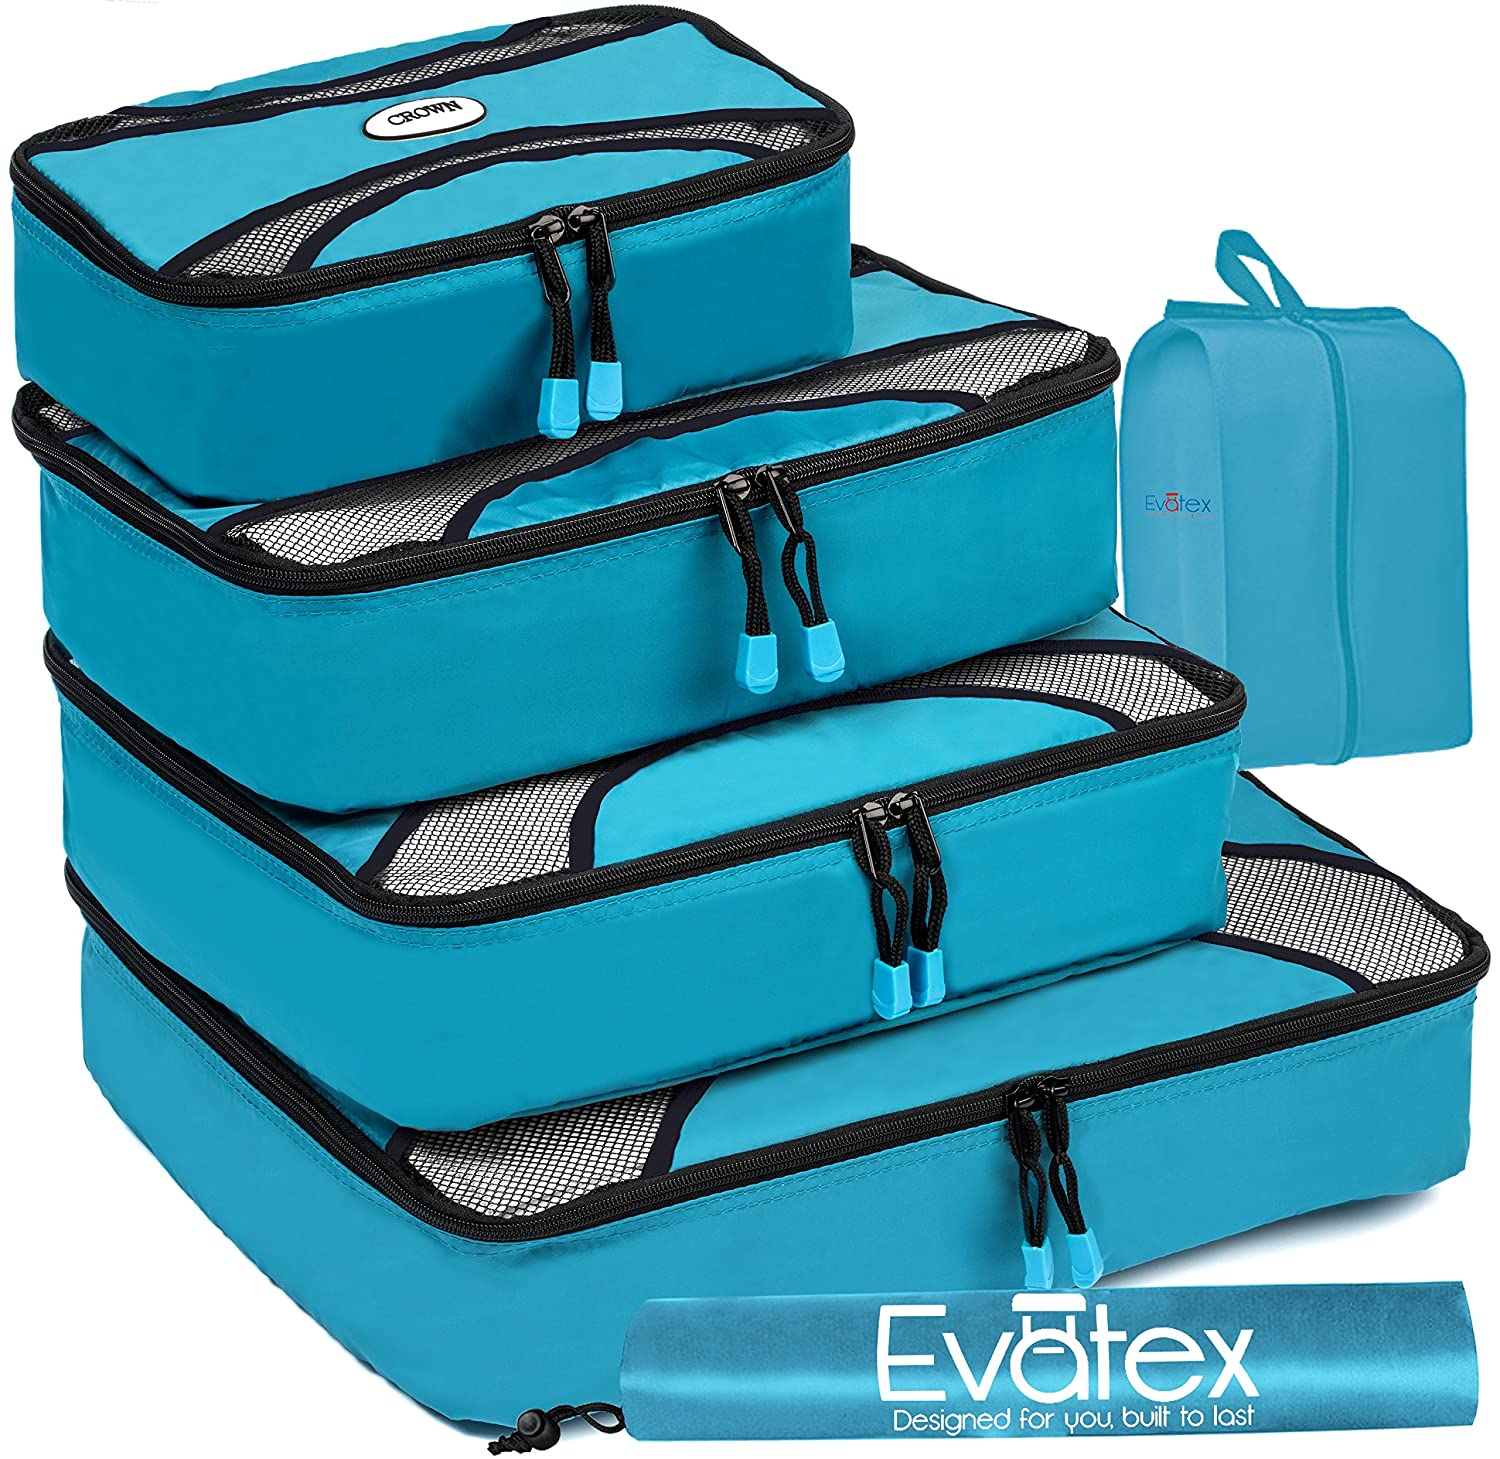 486239e10017 Evatex Packing Cubes | Travel Packing Cubes, 6 psc Set with Shoe Bag and  Laundry Bag